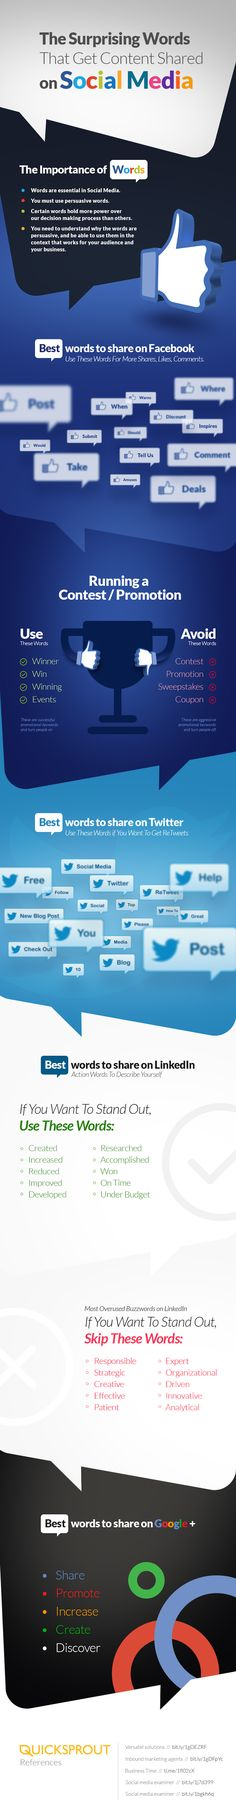 The Surprising Words That Get Content Shared on Social Media #socialmedia #infographic